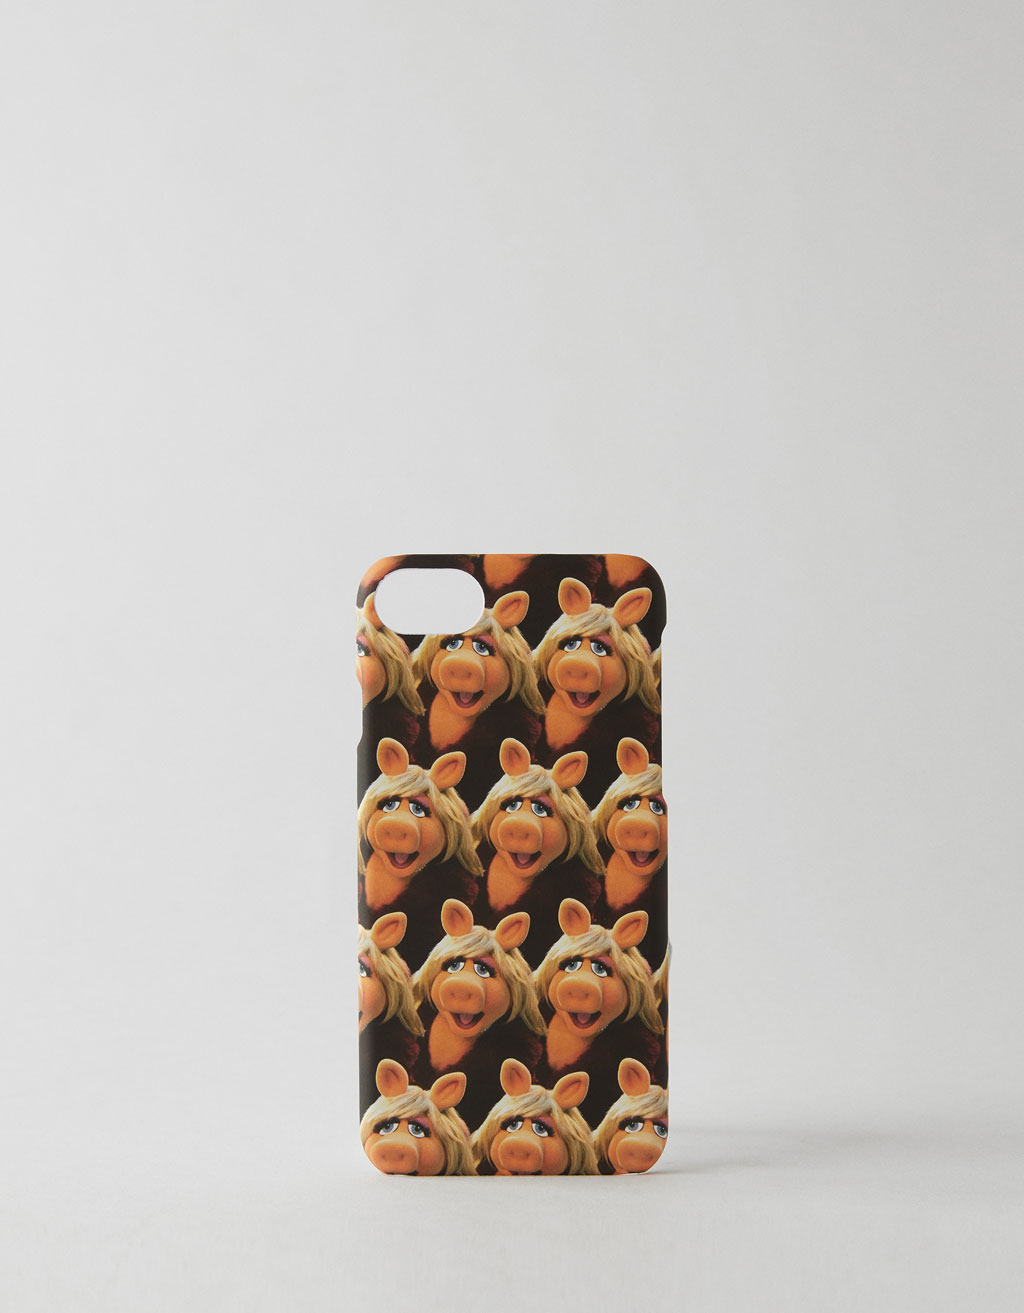 Hoesje Muppets Miss Piggy voor iPhone 6 / 6S / 7 / 8